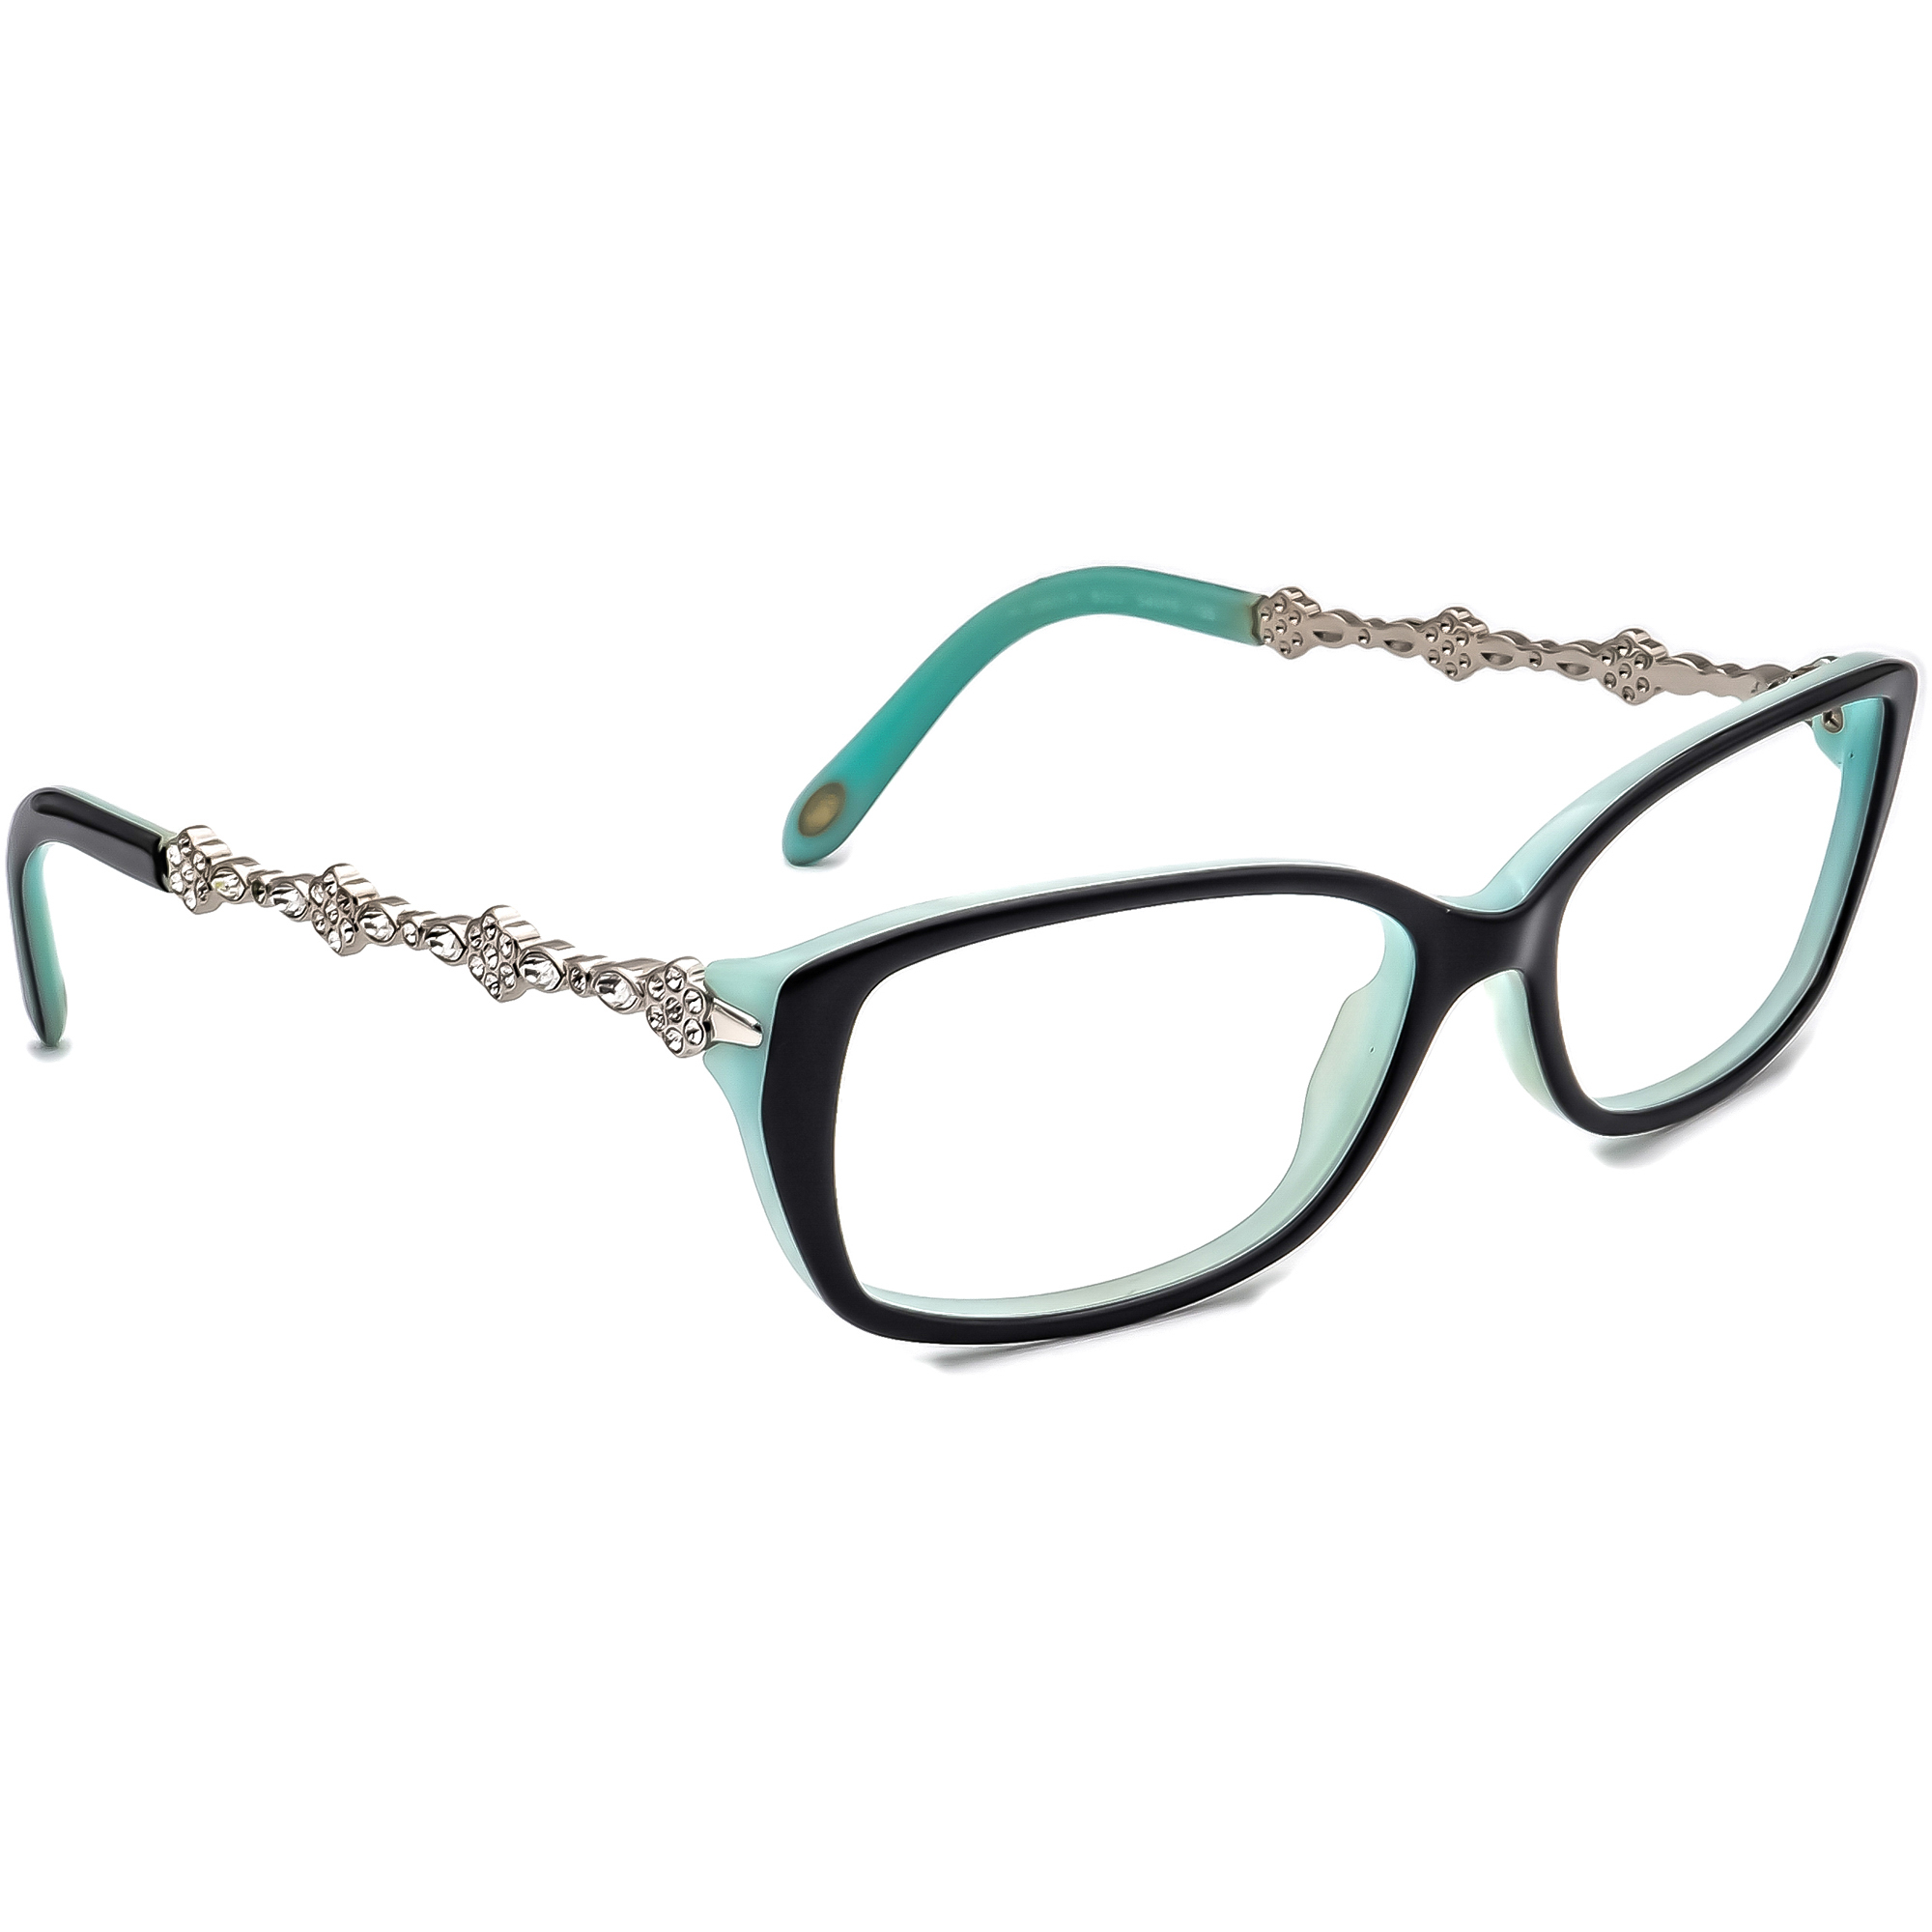 Tiffany & Co. TF 2050-B 8055 Eyeglasses